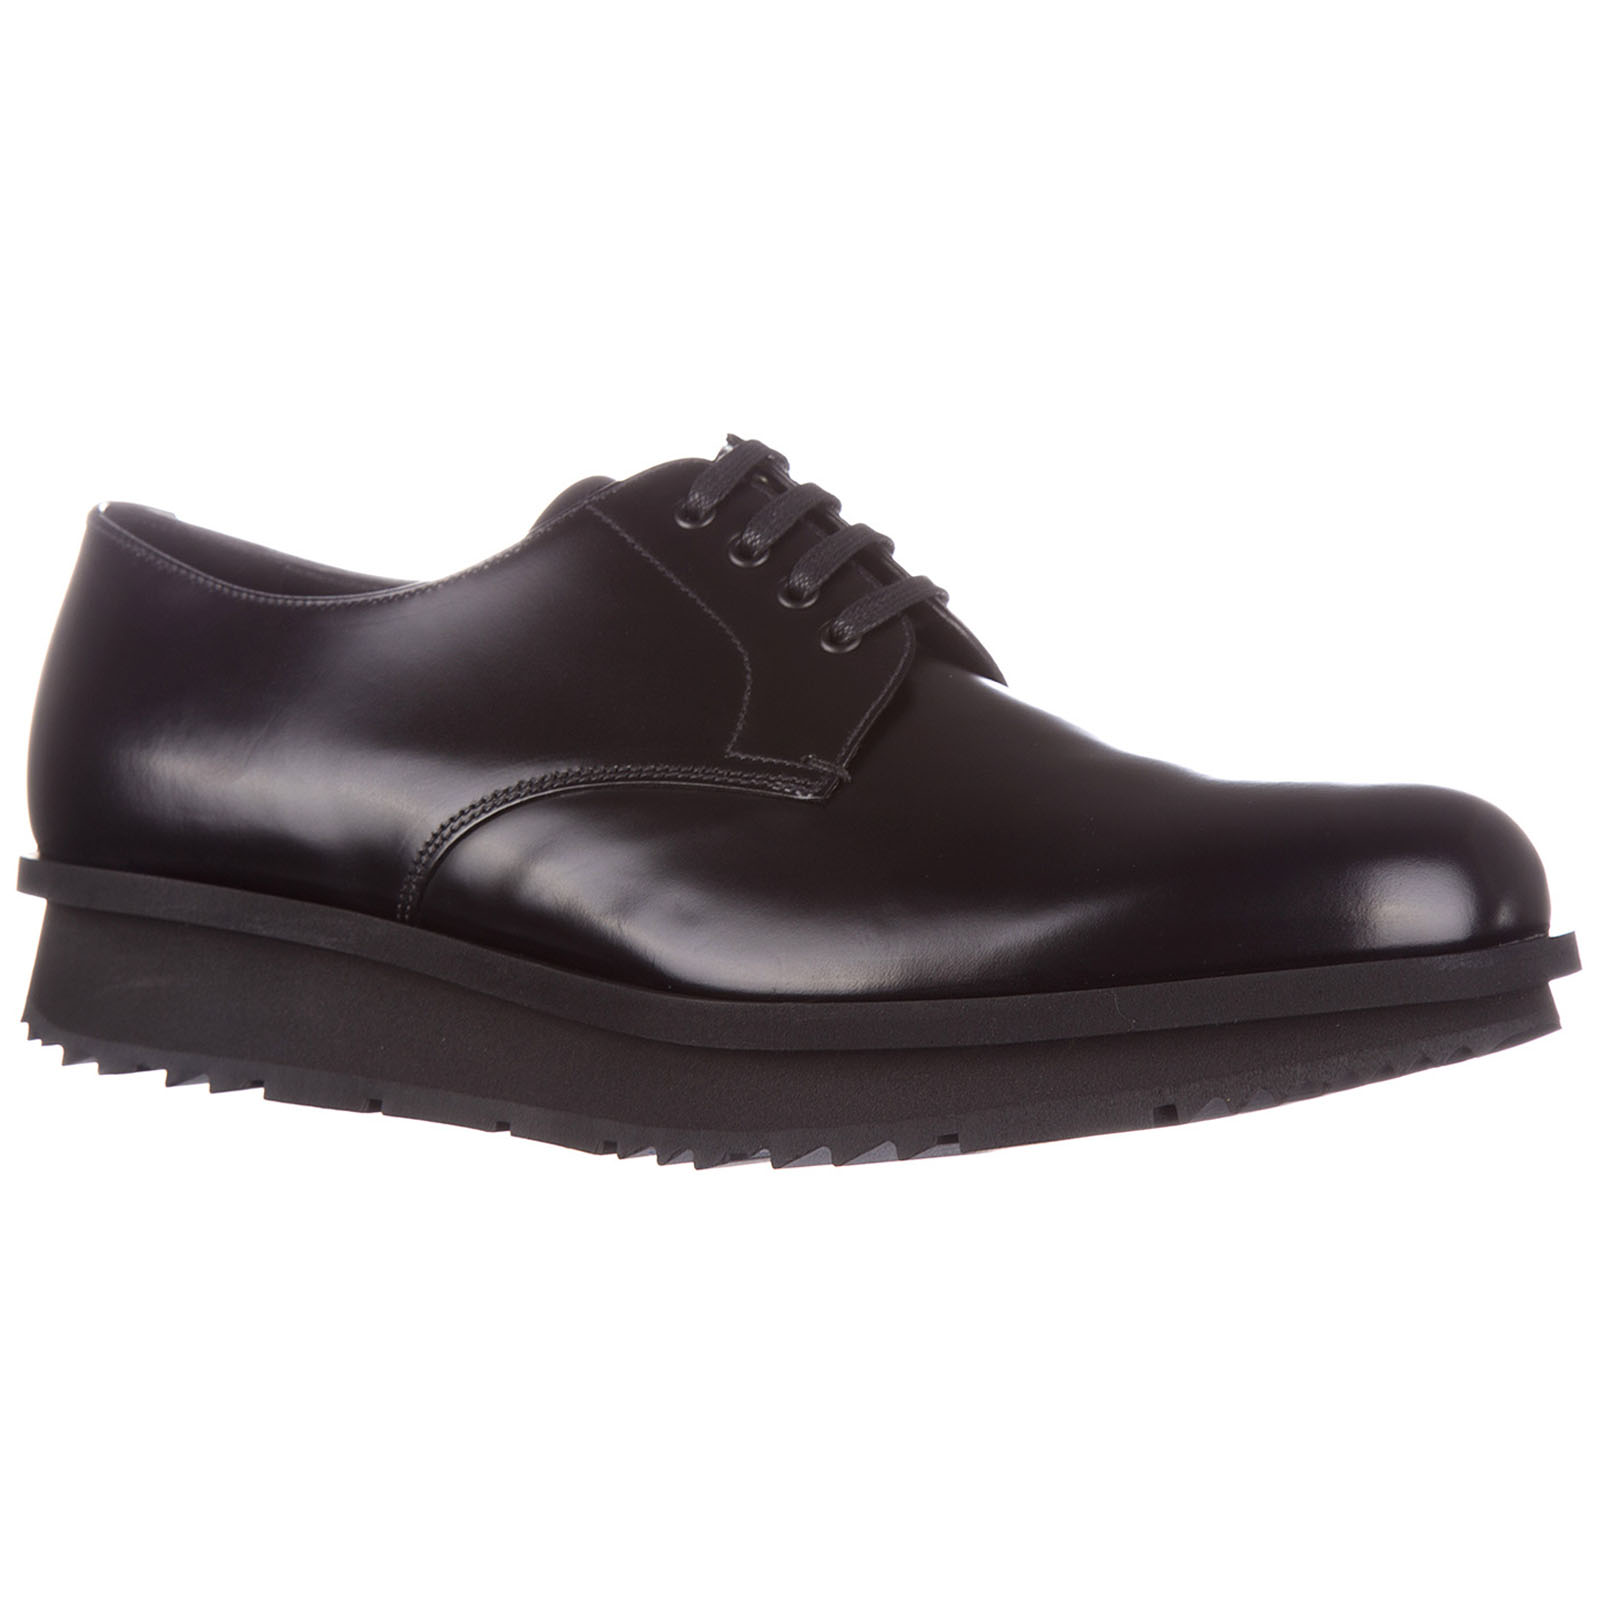 Men's classic leather lace up laced formal shoes spazzolato rois derby